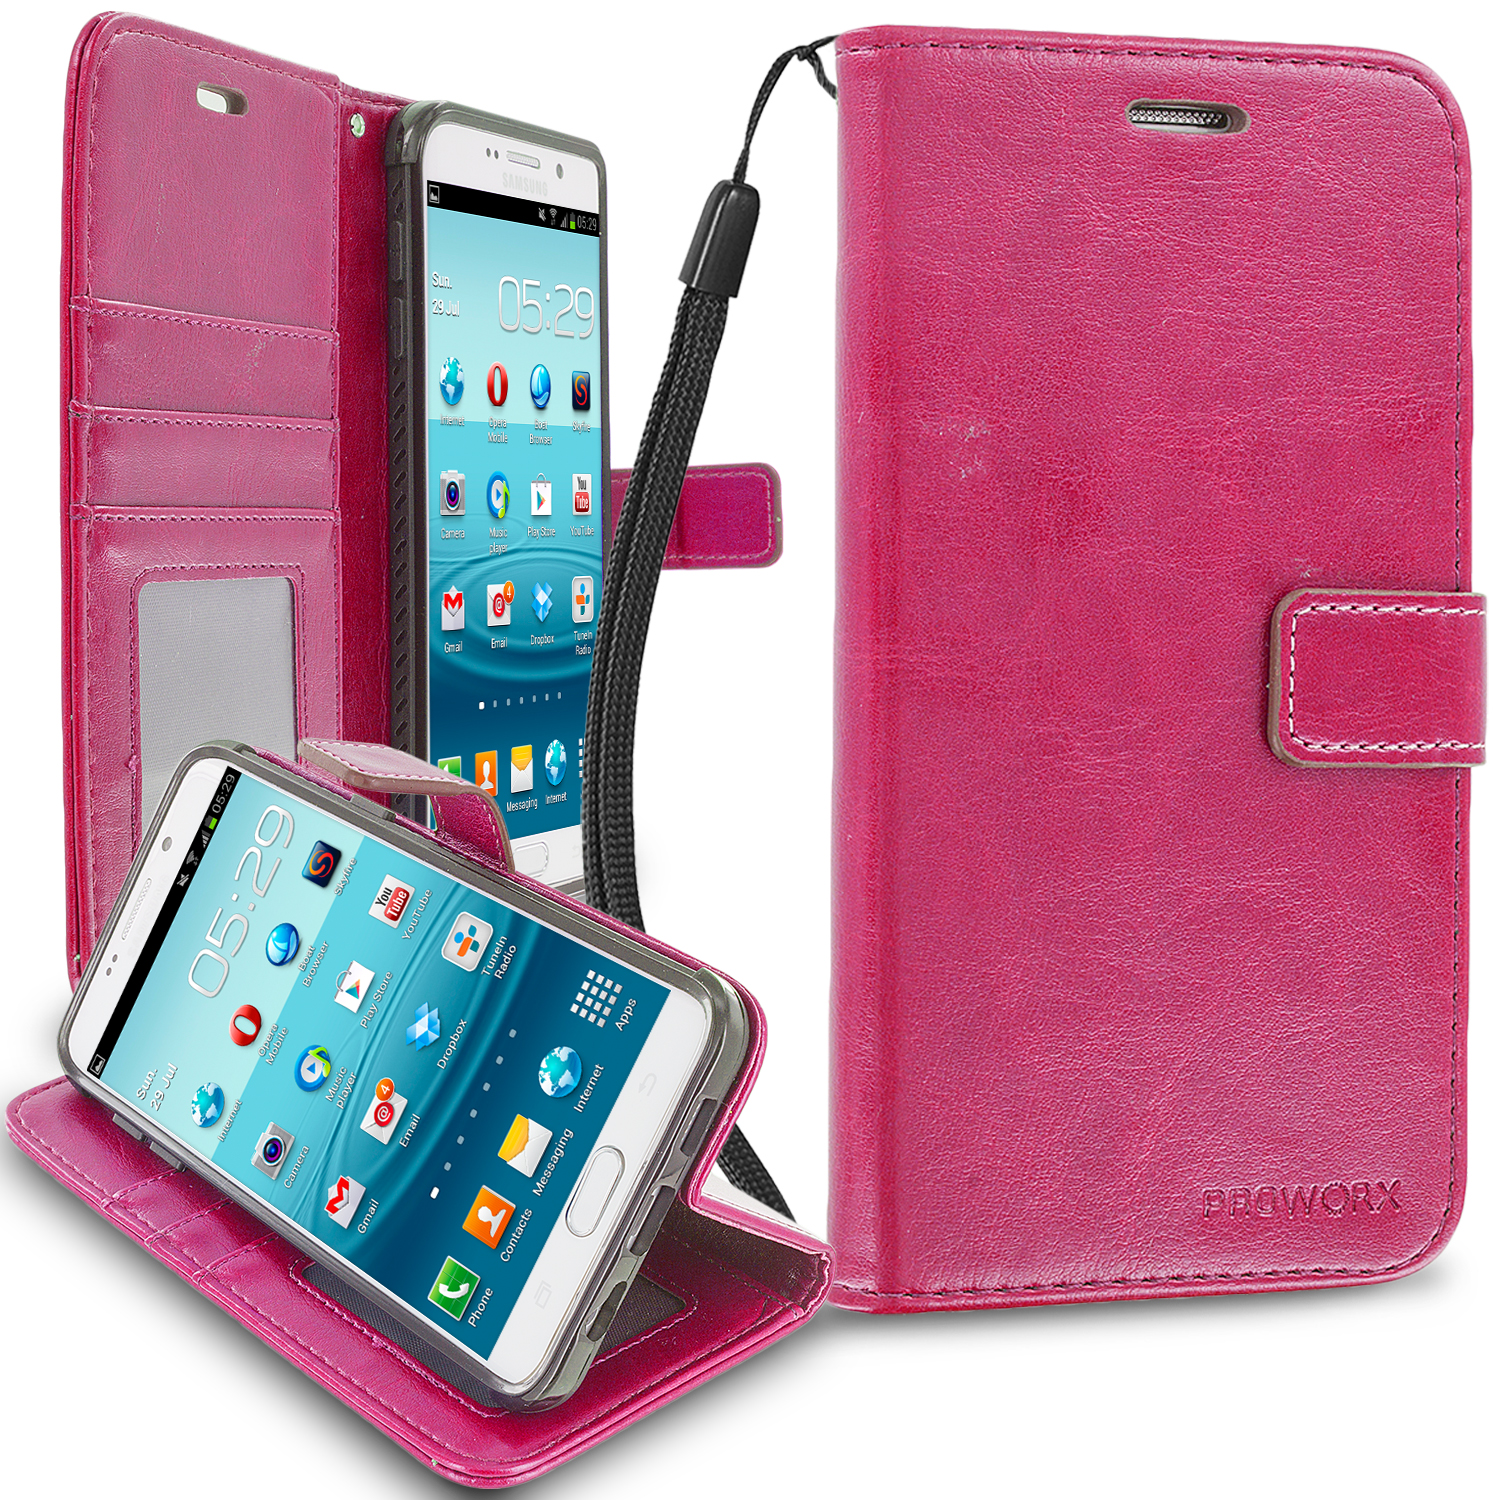 Samsung Galaxy S6 Edge Hot Pink ProWorx Wallet Case Luxury PU Leather Case Cover With Card Slots & Stand